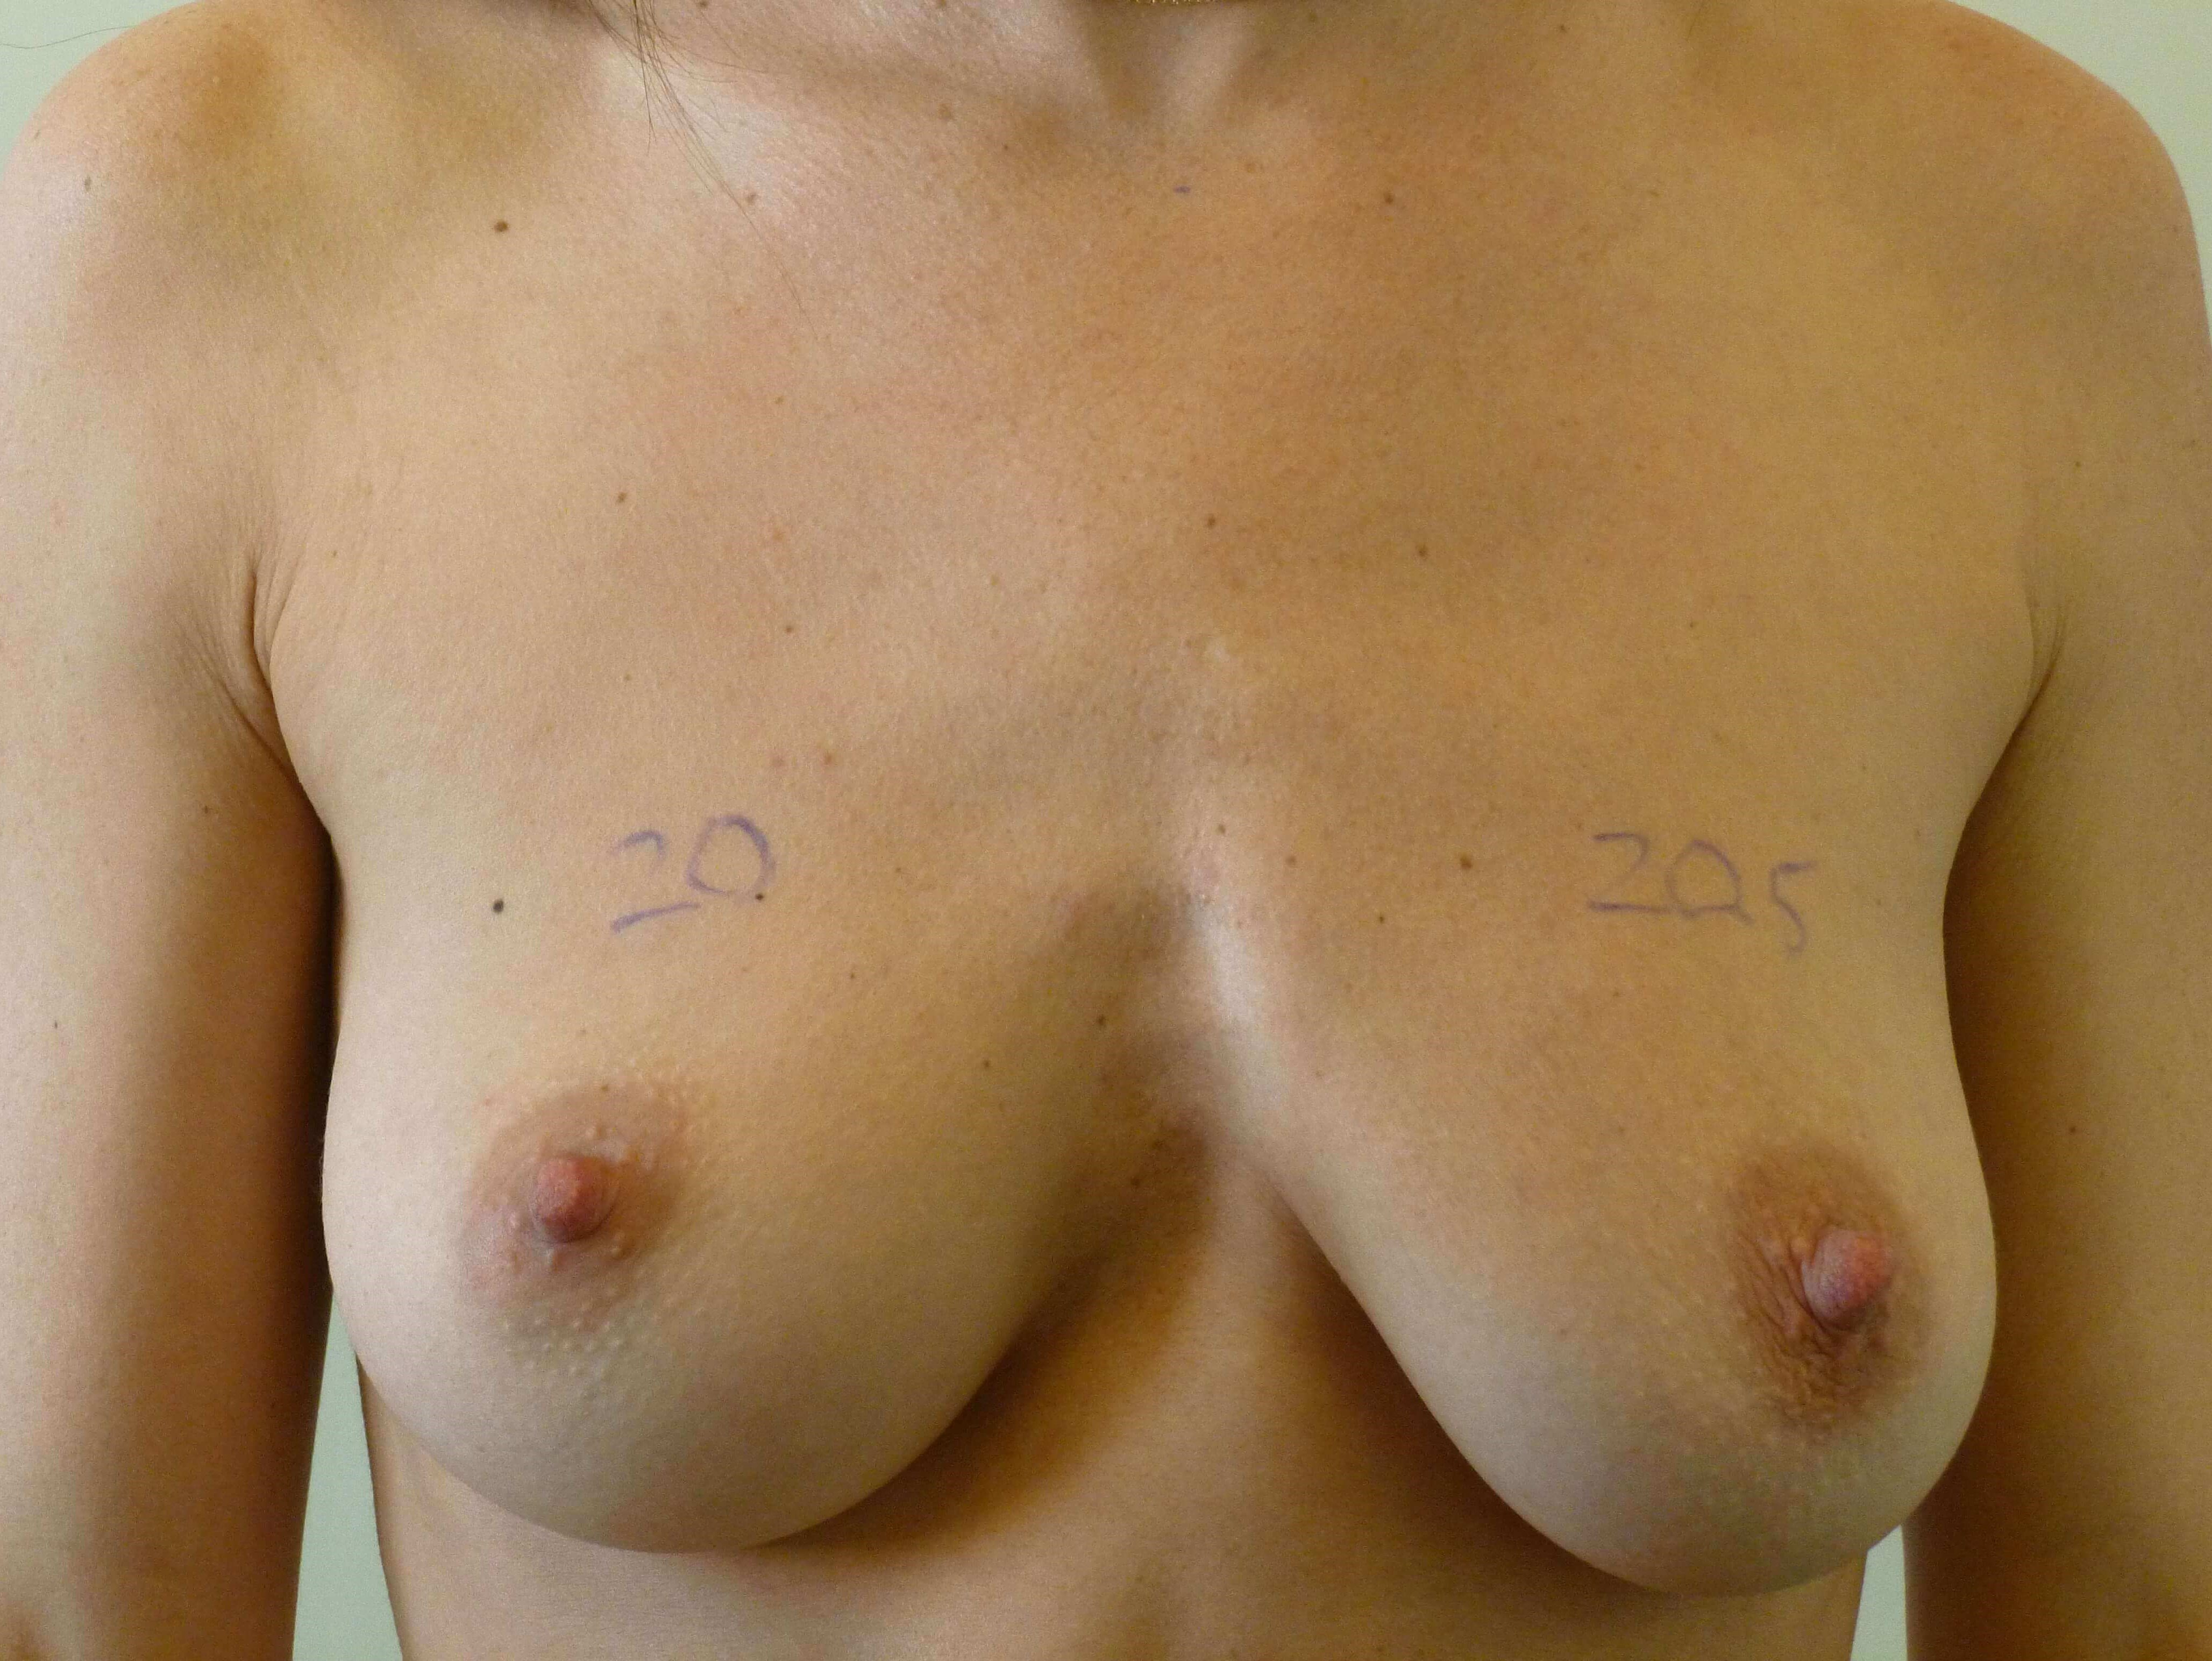 Breast Enhancement Before Implants and BodyTite